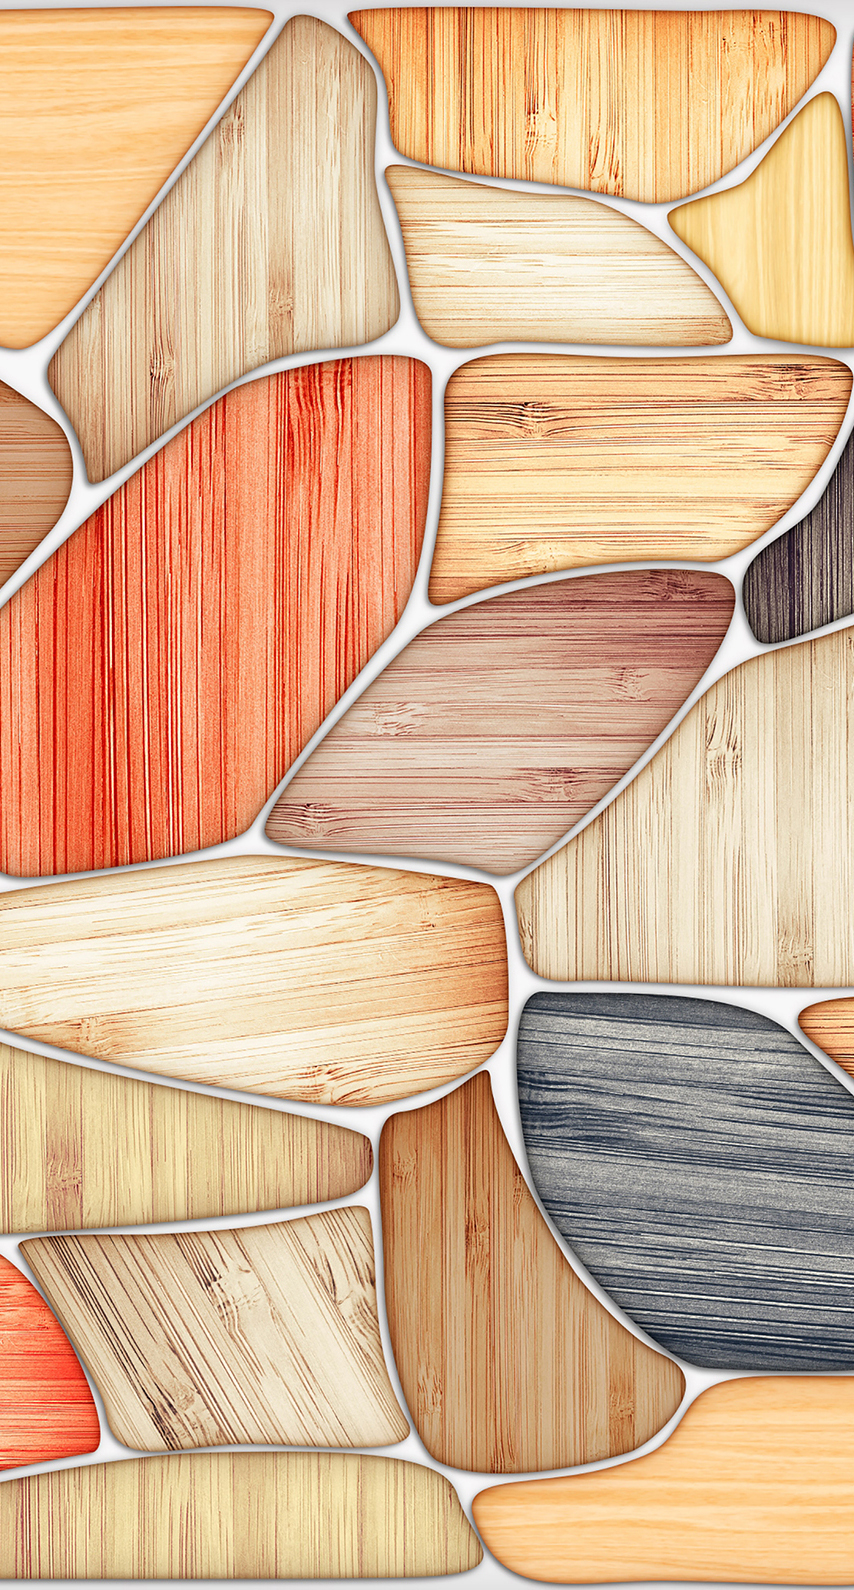 wood, abstract, pattern, retro